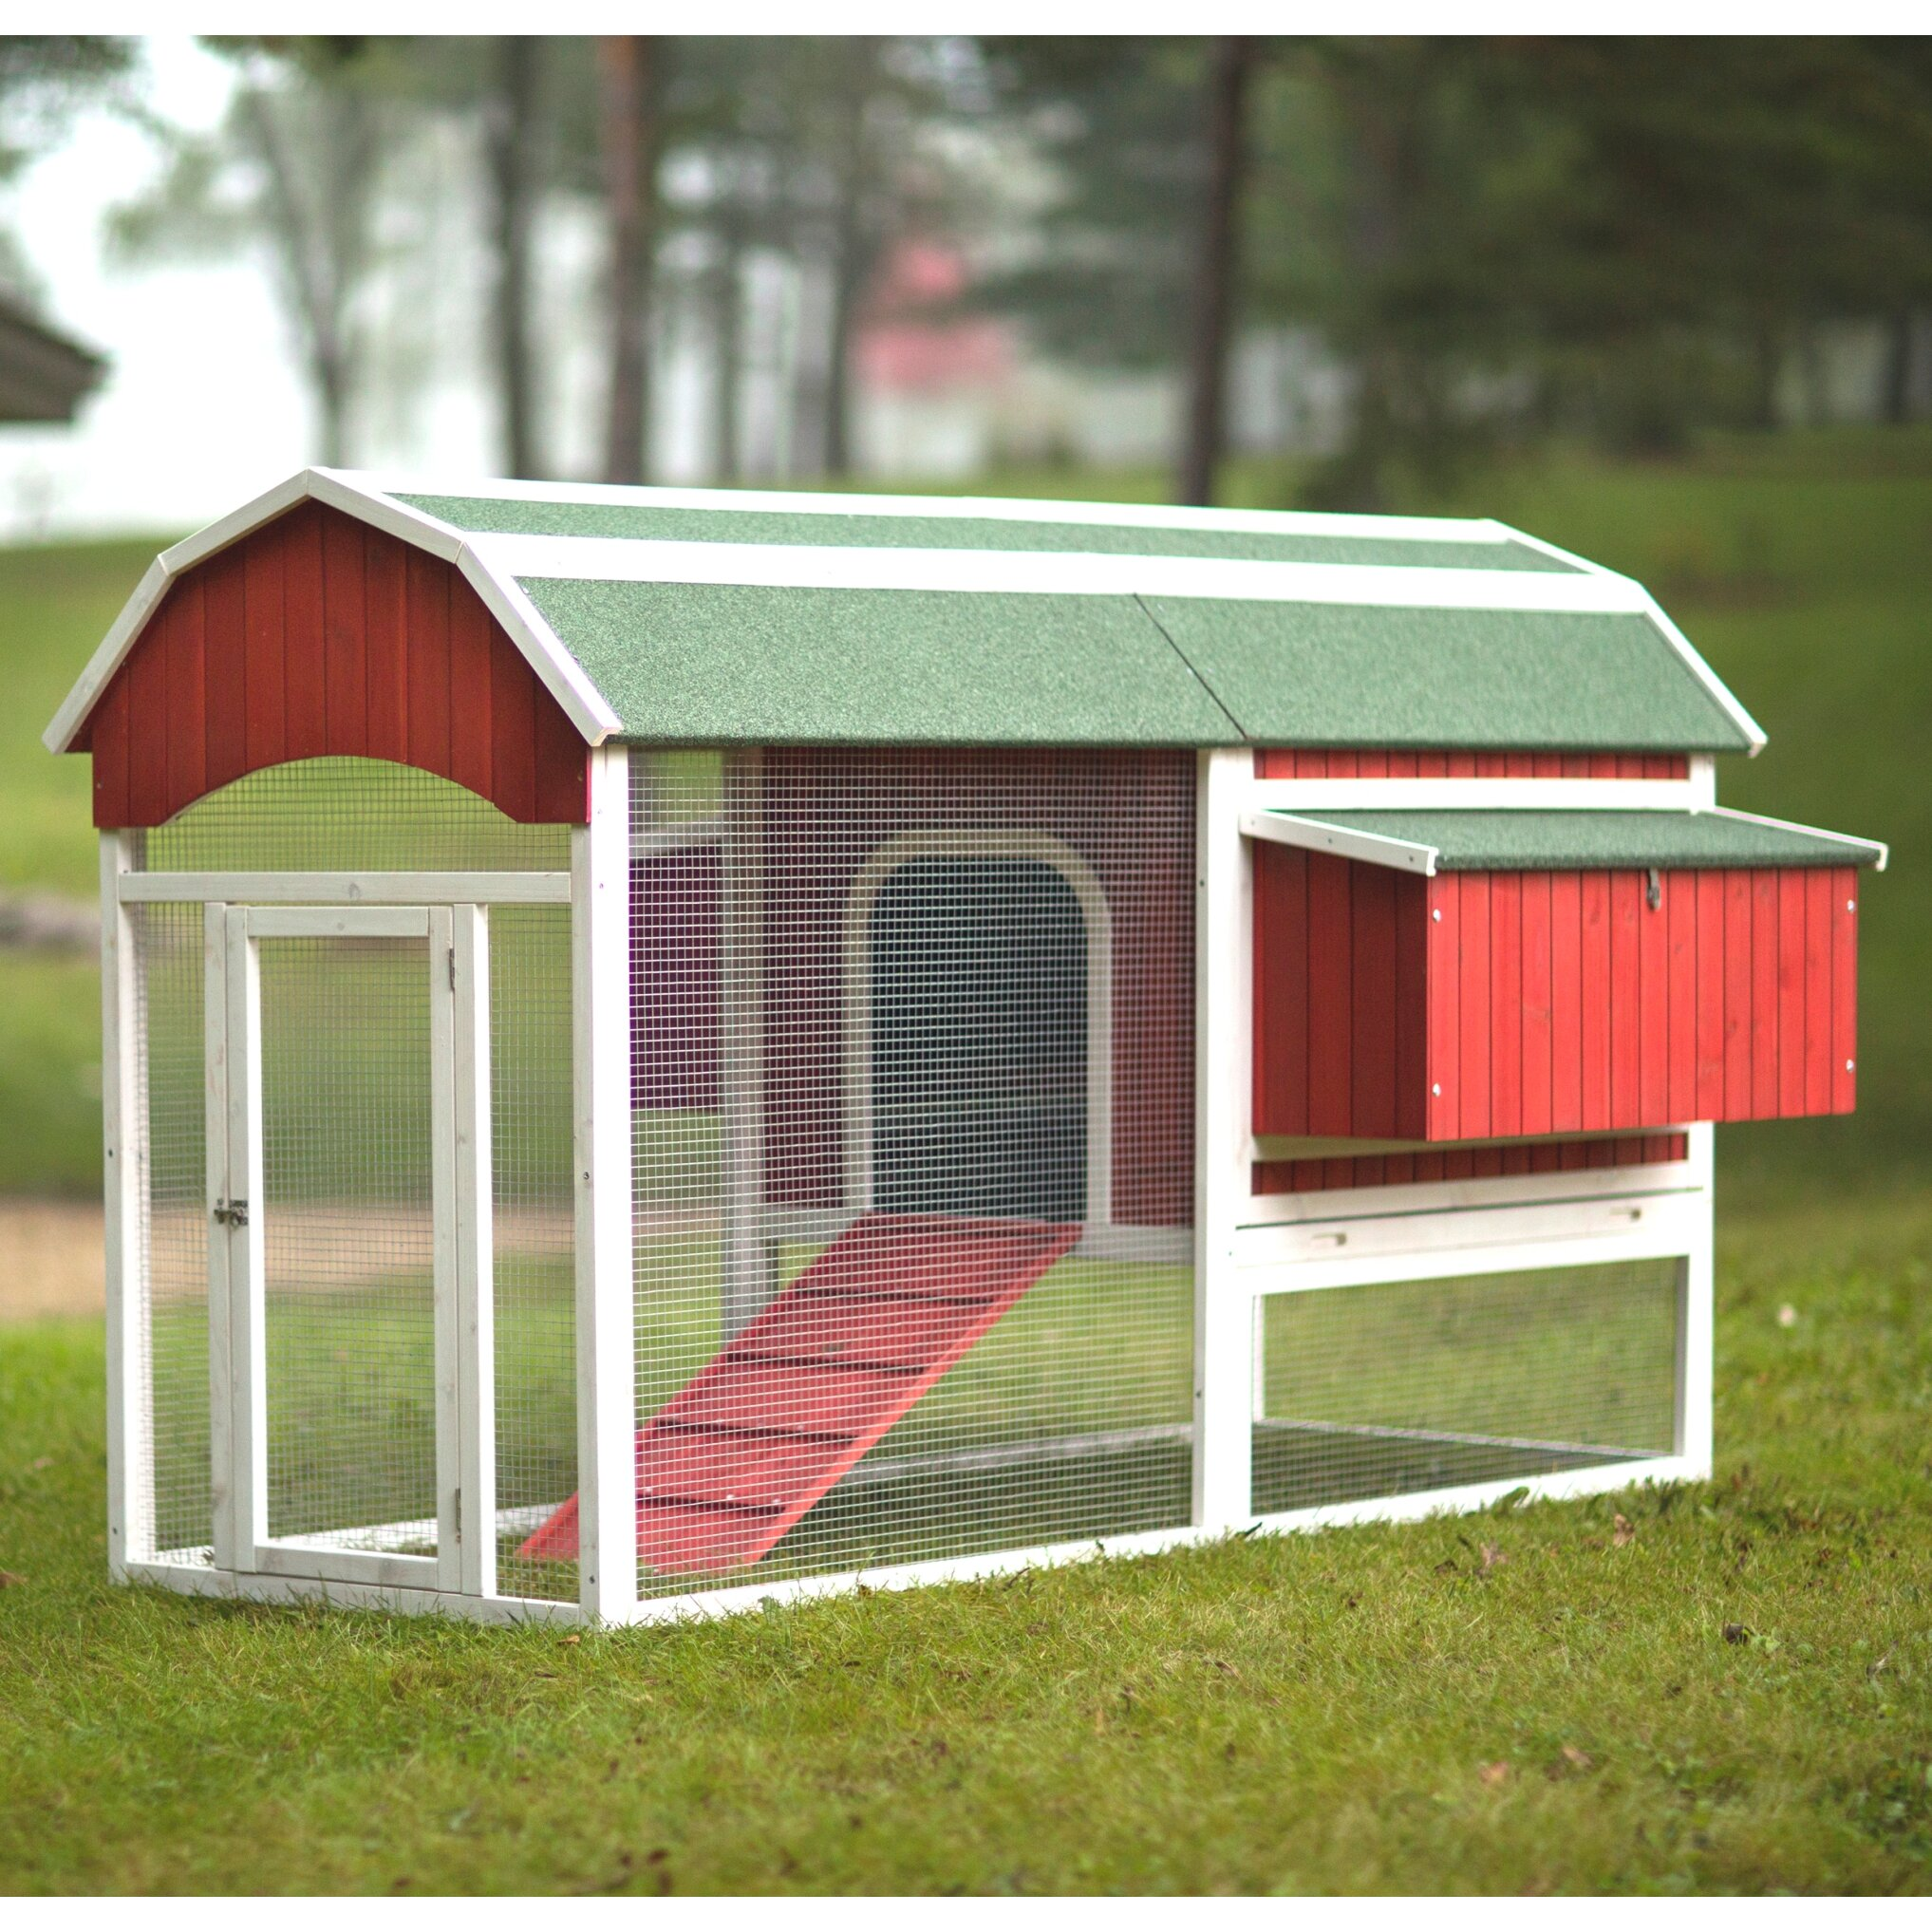 Prevue Hendryx Large Barn Chicken Coop With Roosting Bar